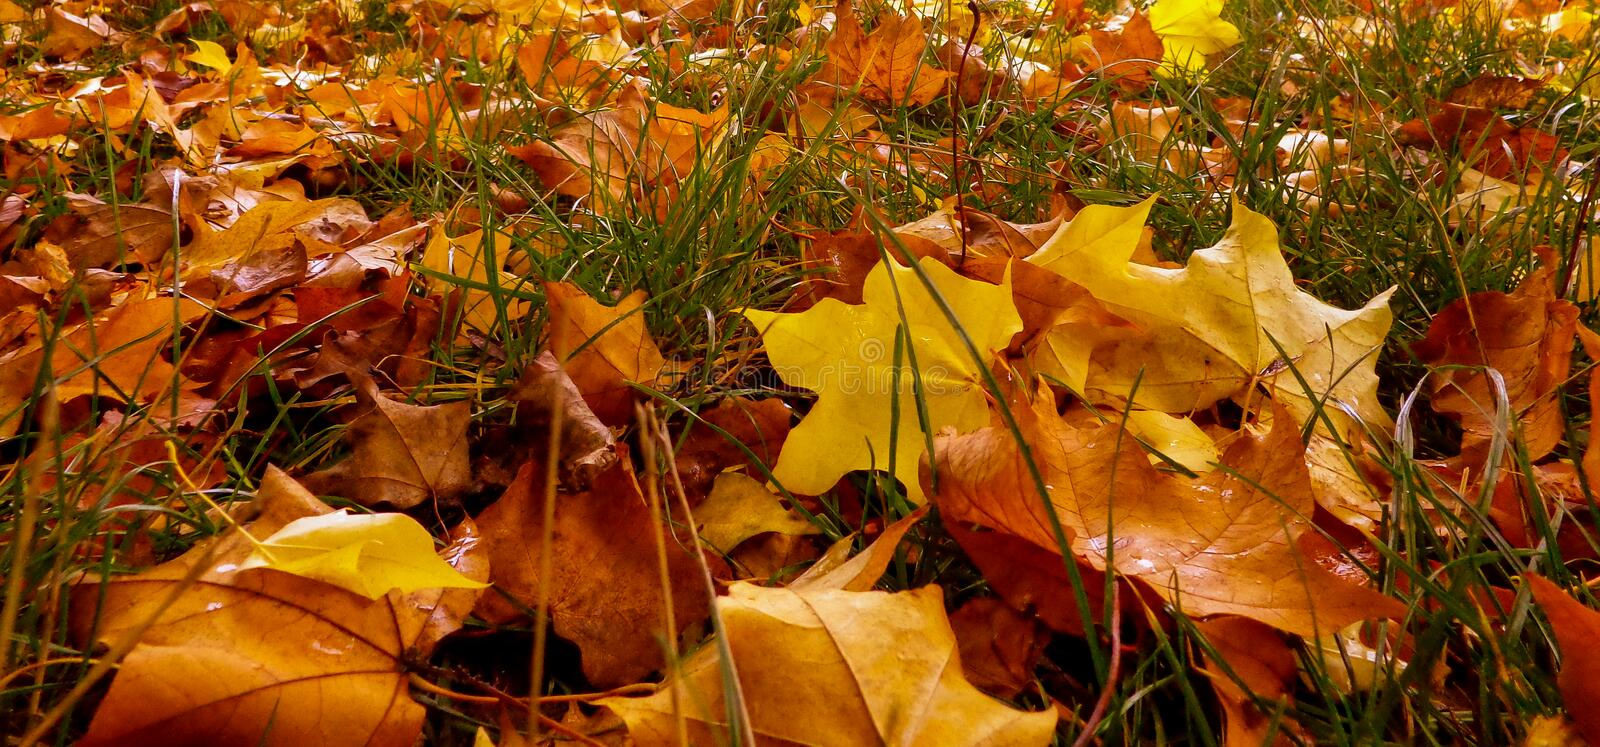 Autumn leaves. Beautiful autumn leafs starting to fall from the trees stock image